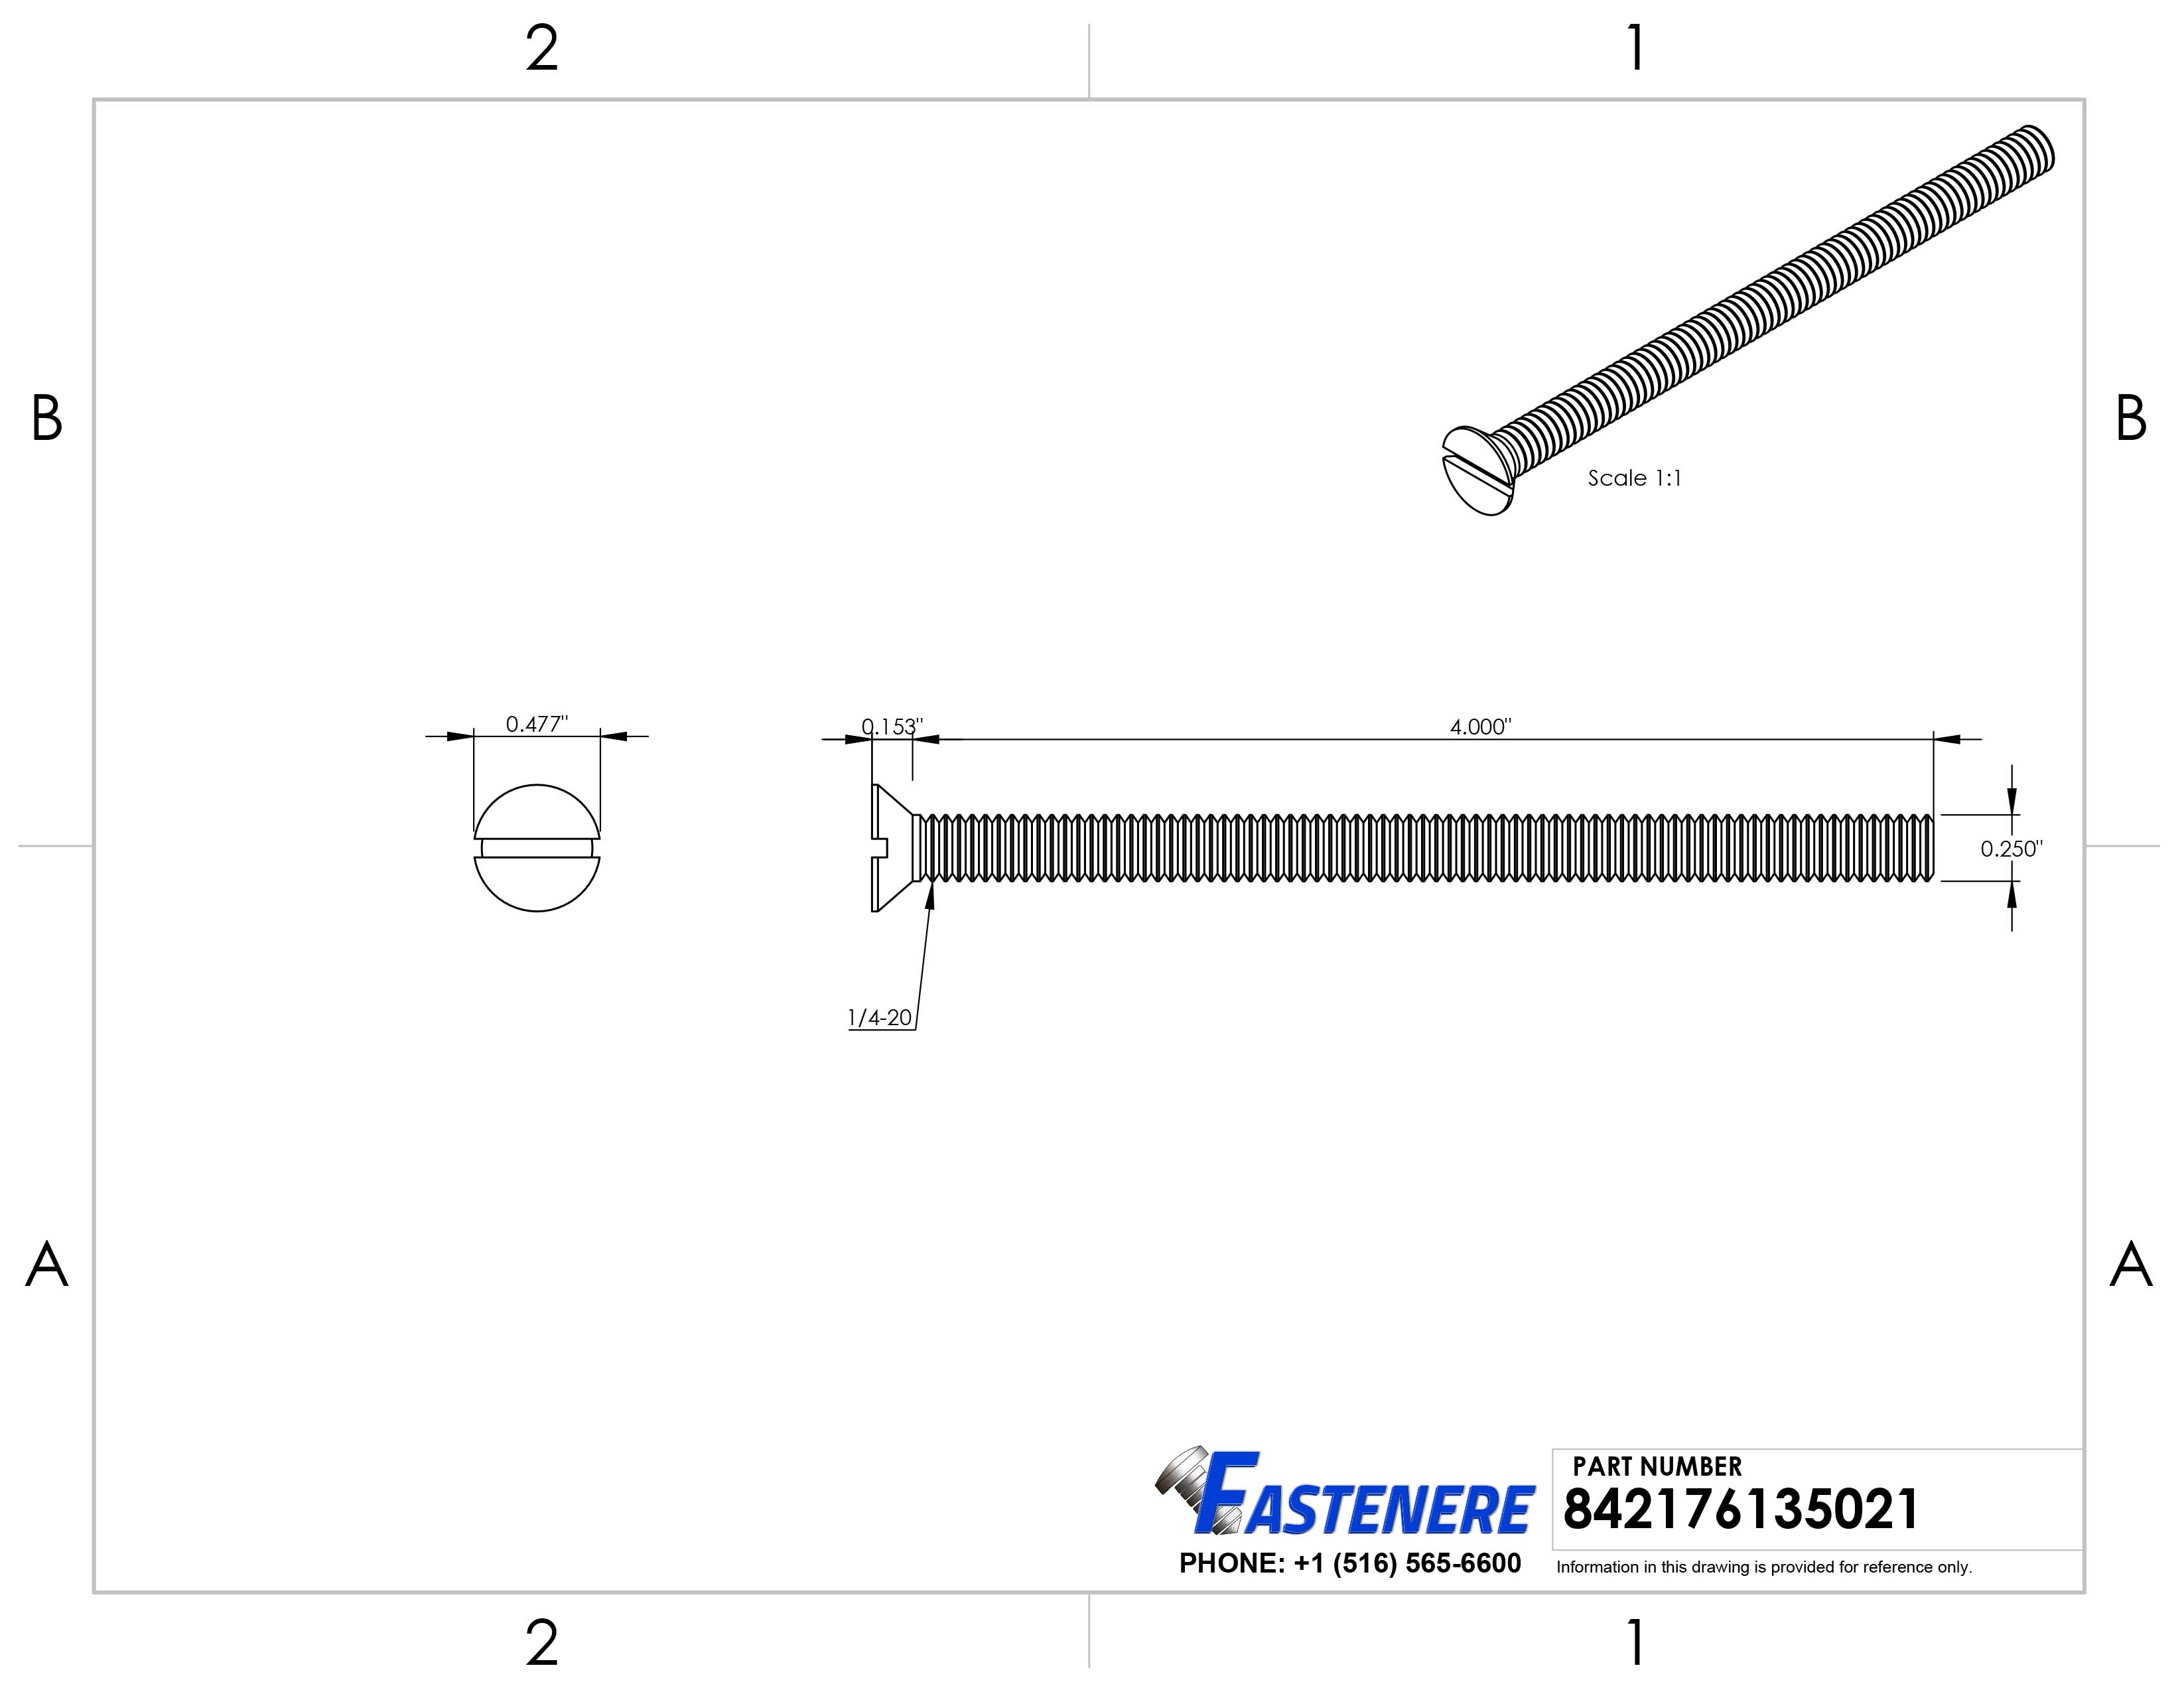 Details about 1/4-20 Flat Head Countersink Machine Screws Slotted Drive  Stainless All Sizes